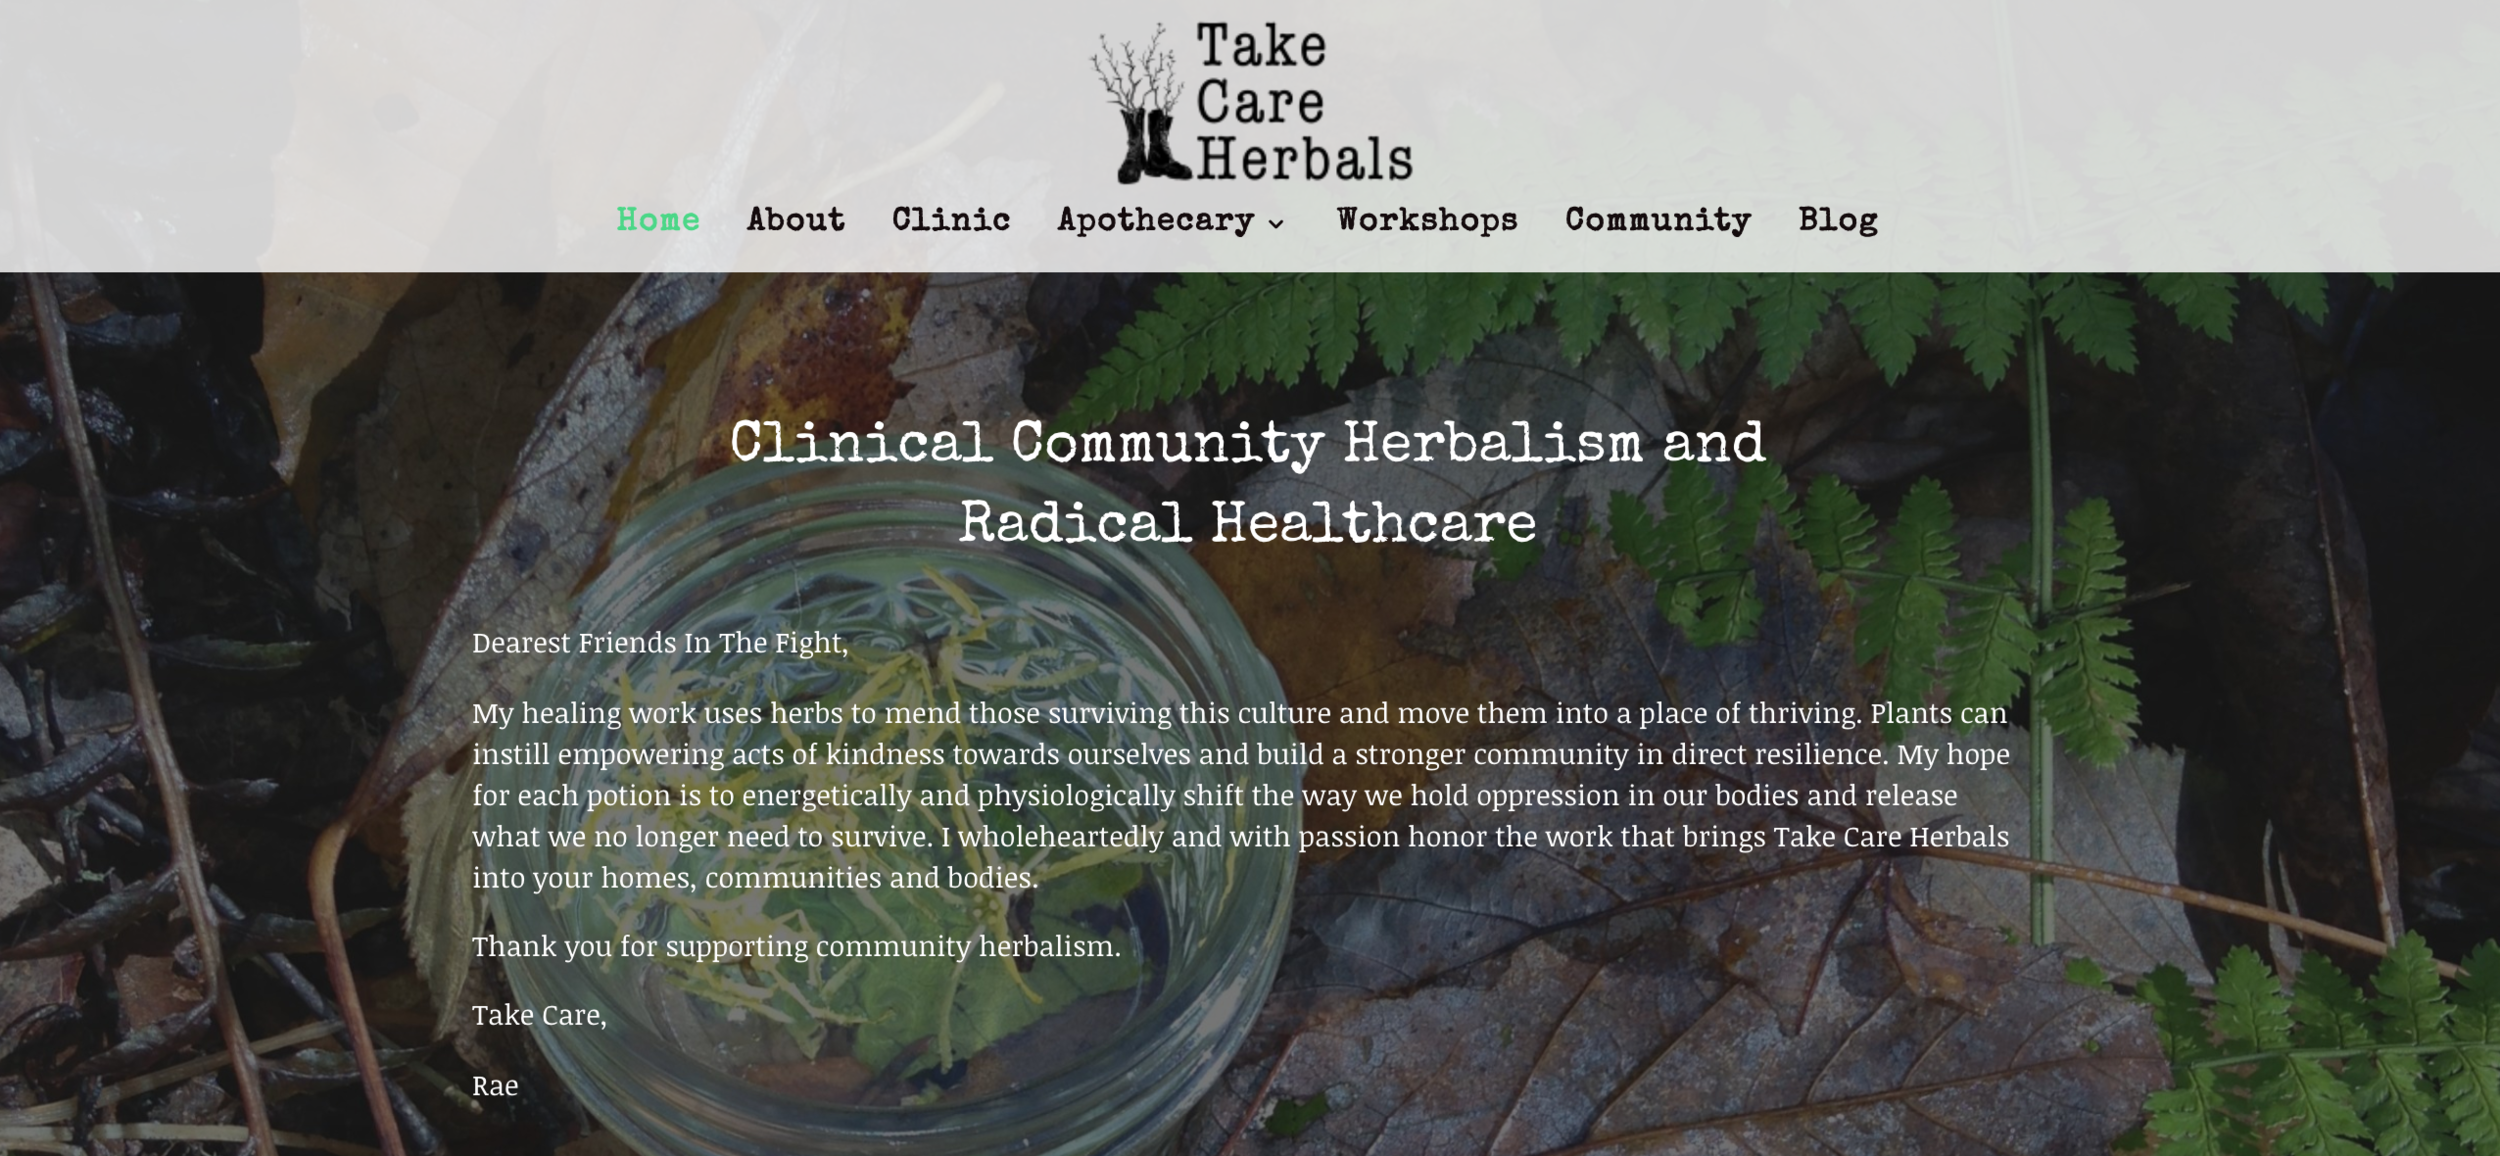 Take_Care_Herbals_homepage.png